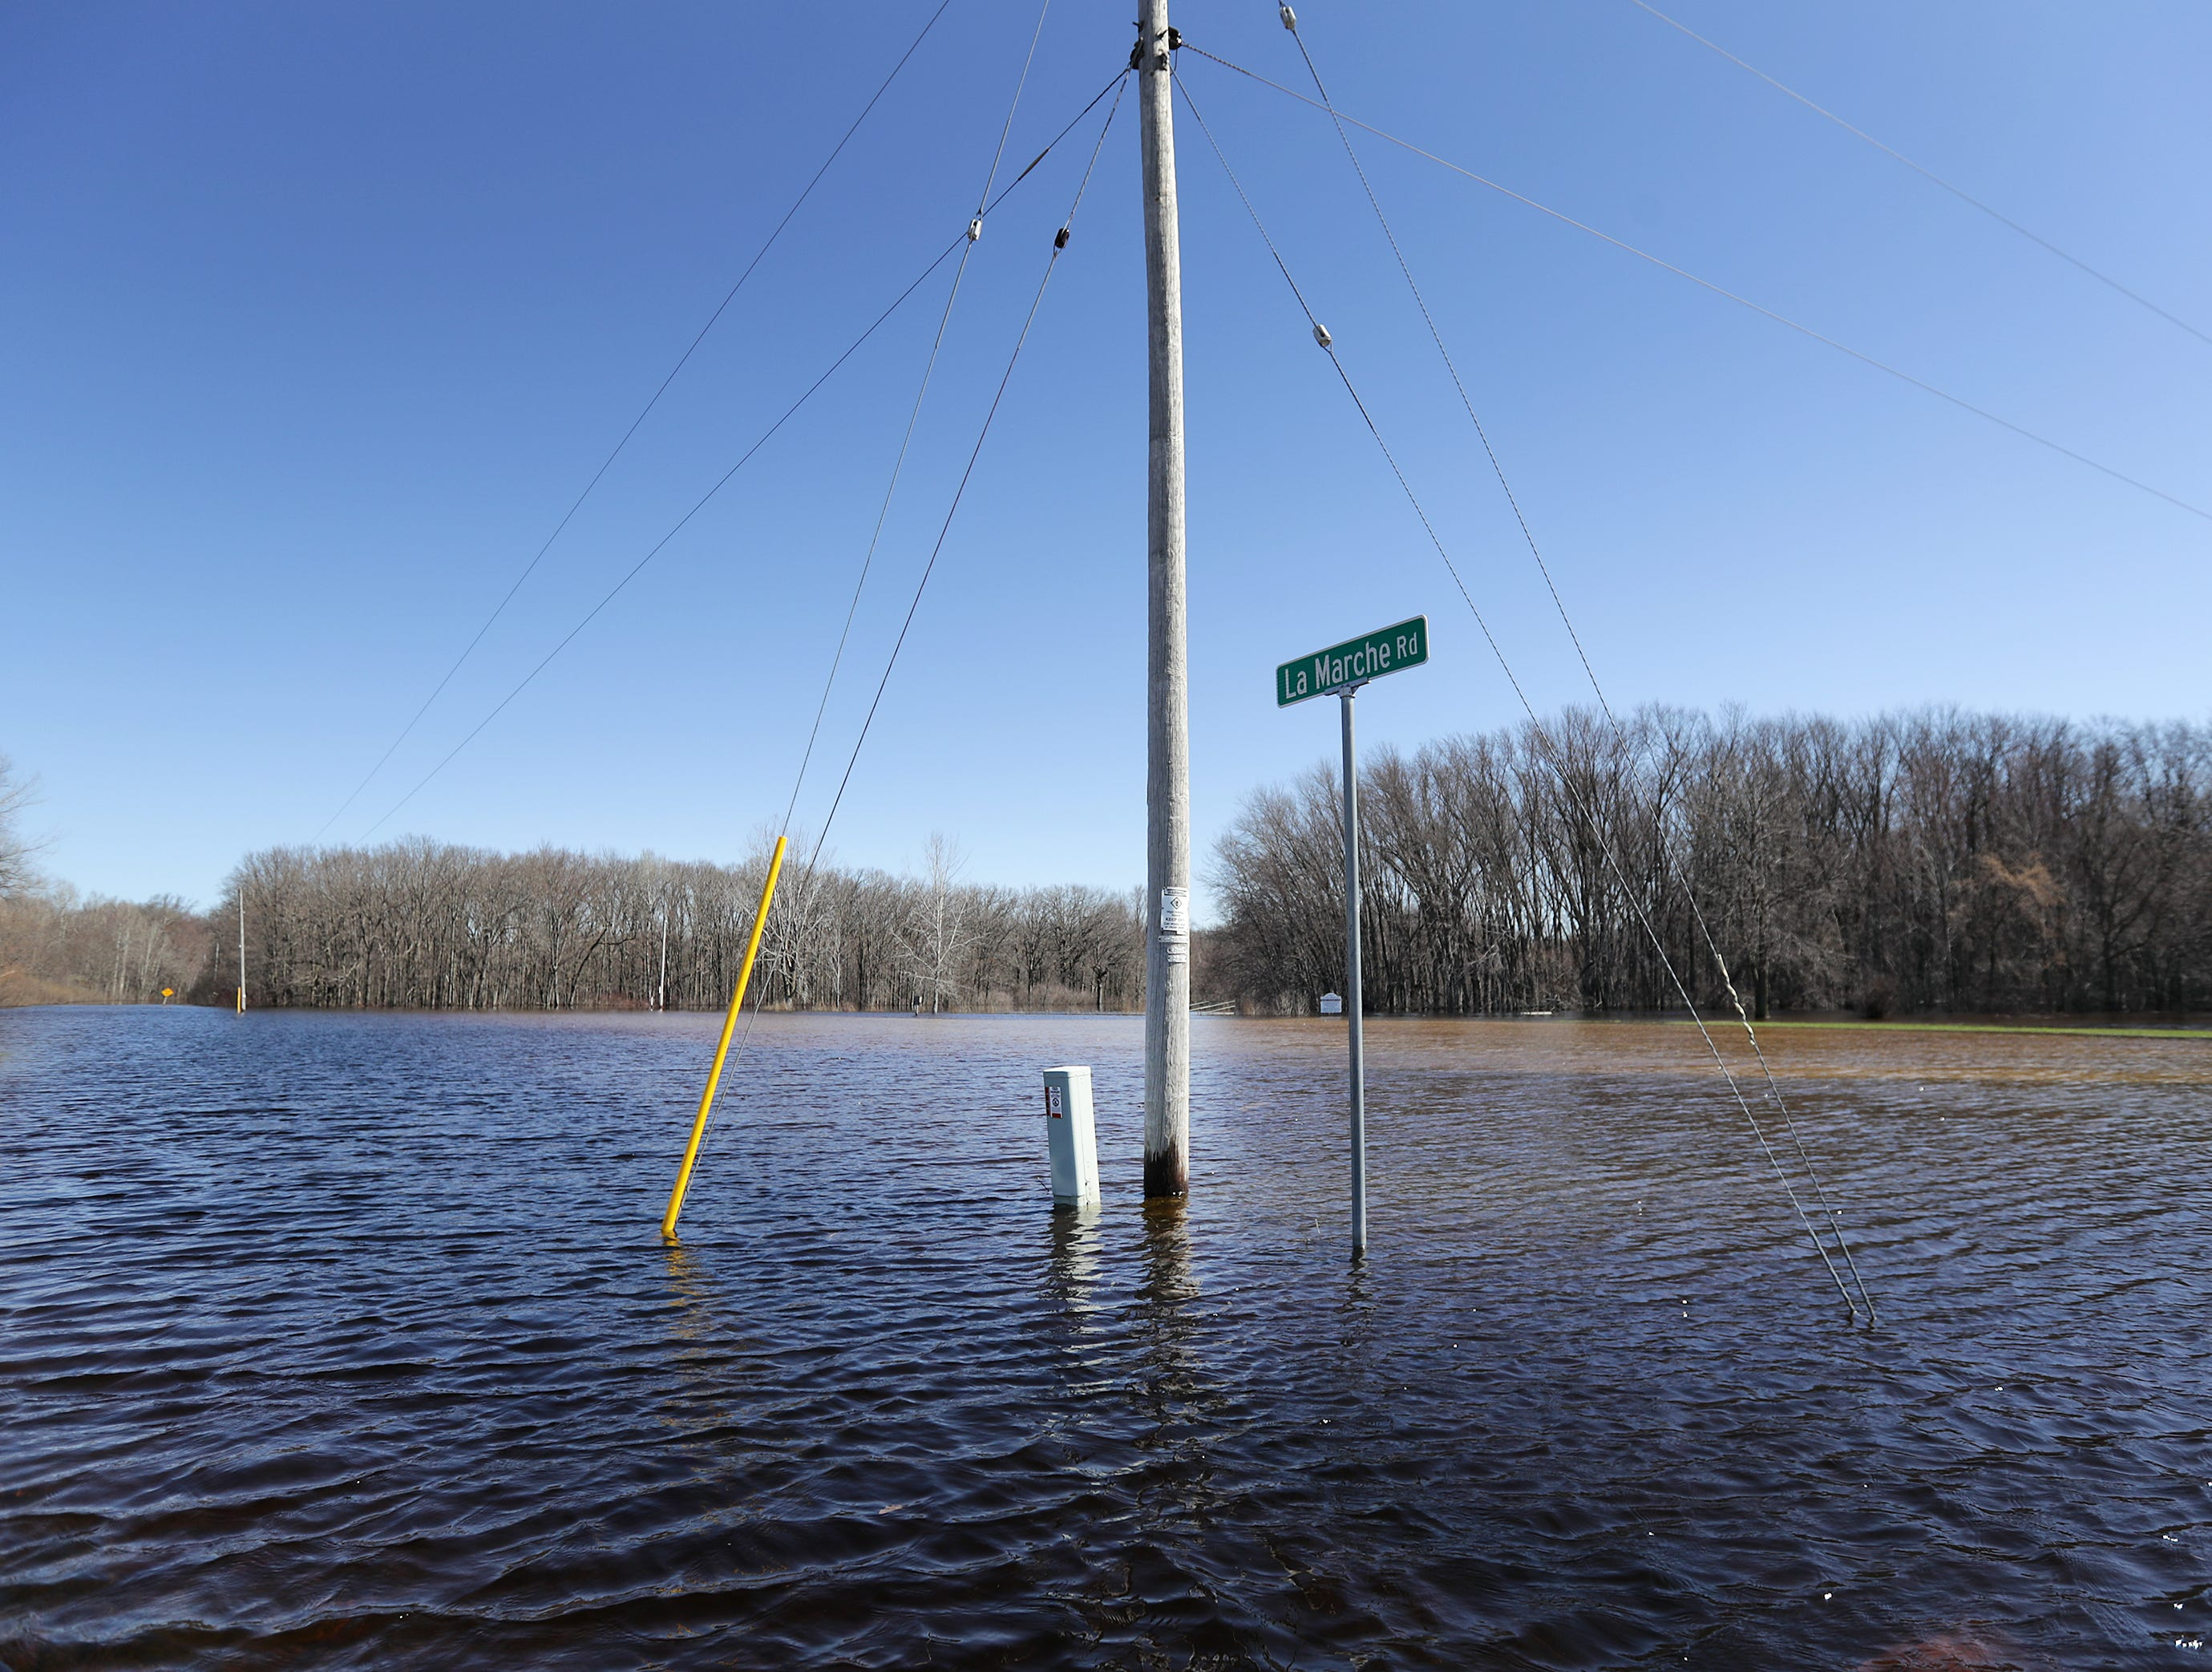 Outagamie County Parks' Koepke Access boat landing and parking lot are covered in water during flooding along the Wolf River on Tuesday, April 23, 2019, in Shiocton, Wis.  Wm. Glasheen/USA TODAY NETWORK-Wisconsin.